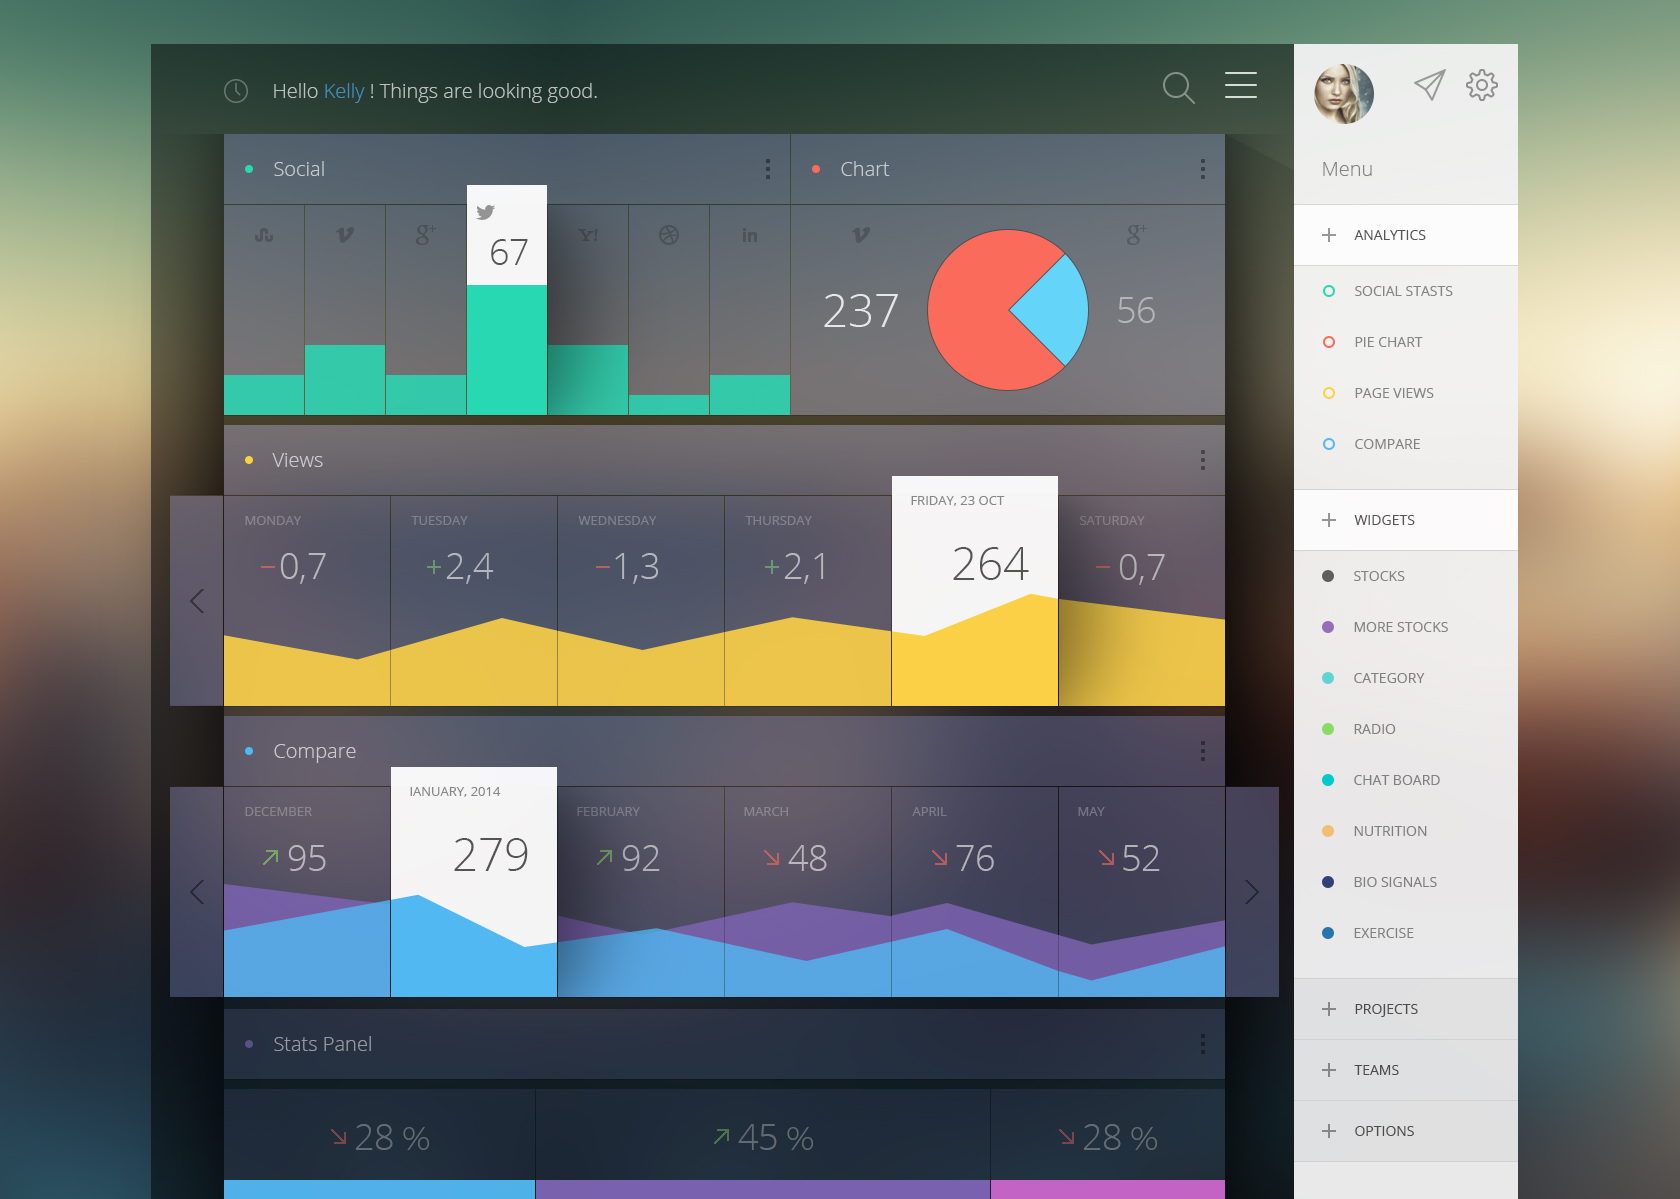 Some_Analytics_Real_Pixels.jpg by Cosmin Capitanu